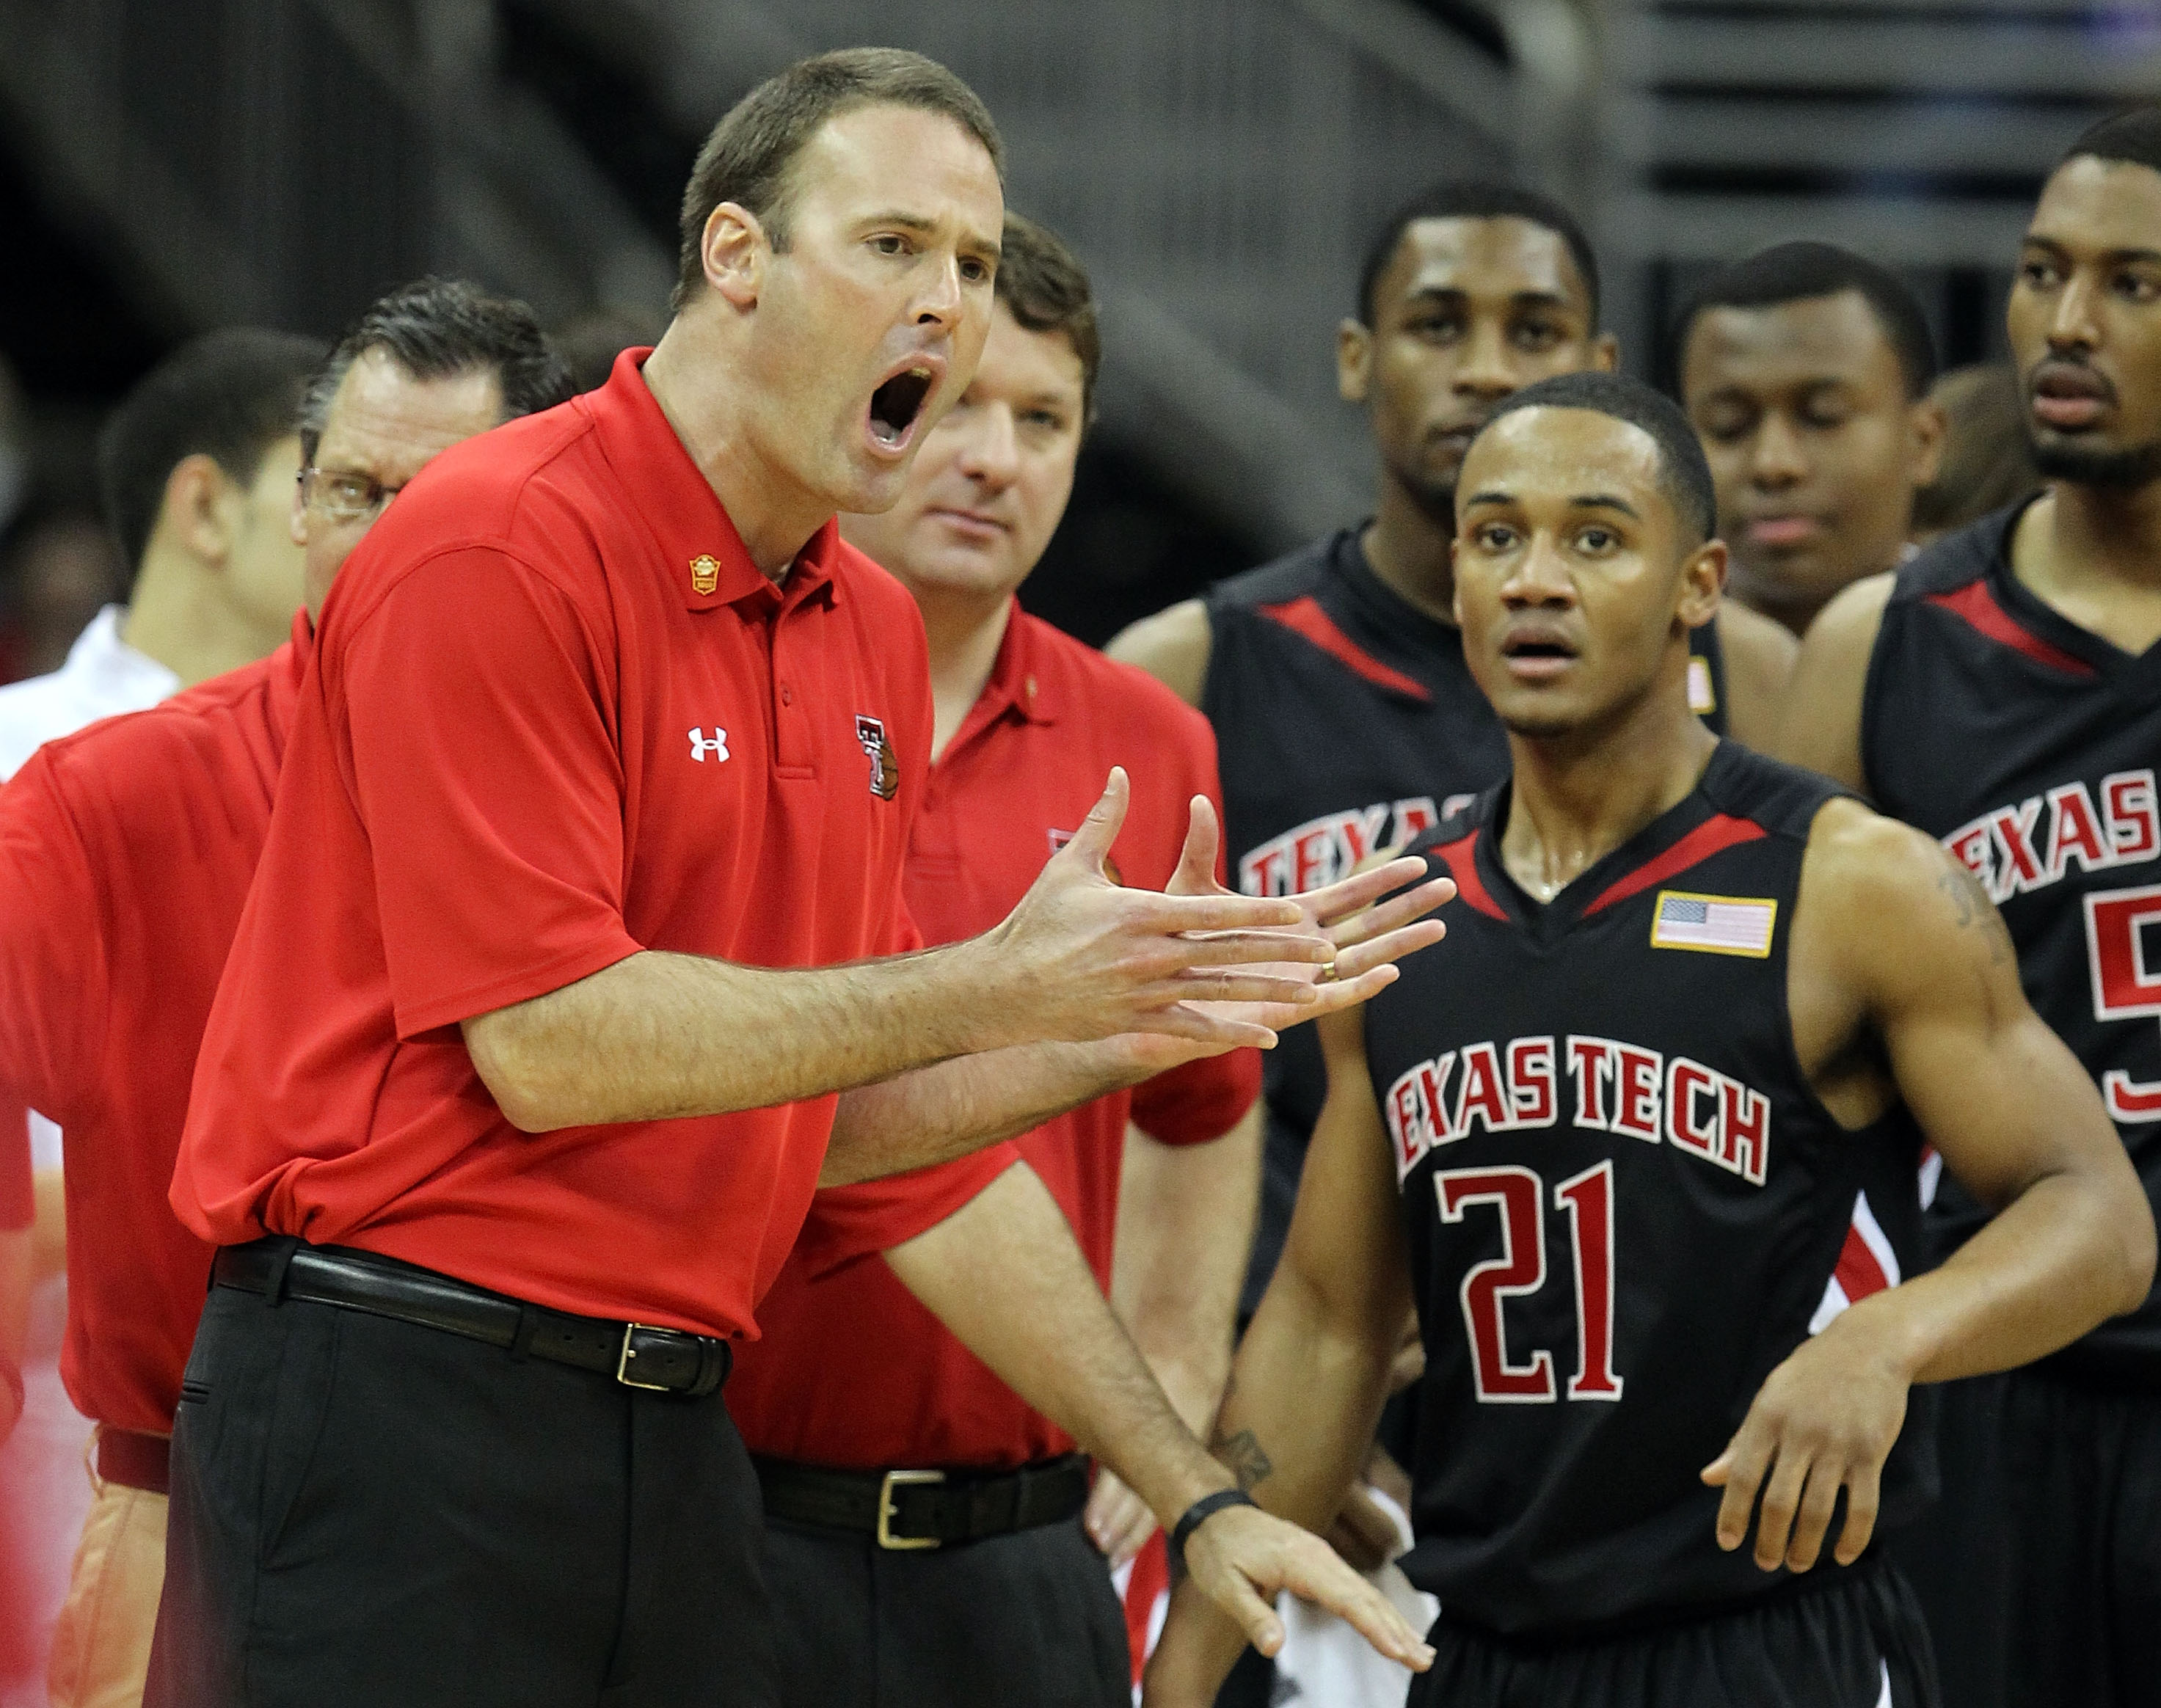 KANSAS CITY, MO - MARCH 11:  Head coach Pat Knight of the Texas Tech Red Raiders yells over at John Roberson #21 in the first half while taking on the Kansas Jayhawks during the quarterfinals of the 2010 Phillips 66 Big 12 Men's Basketball Tournament at t